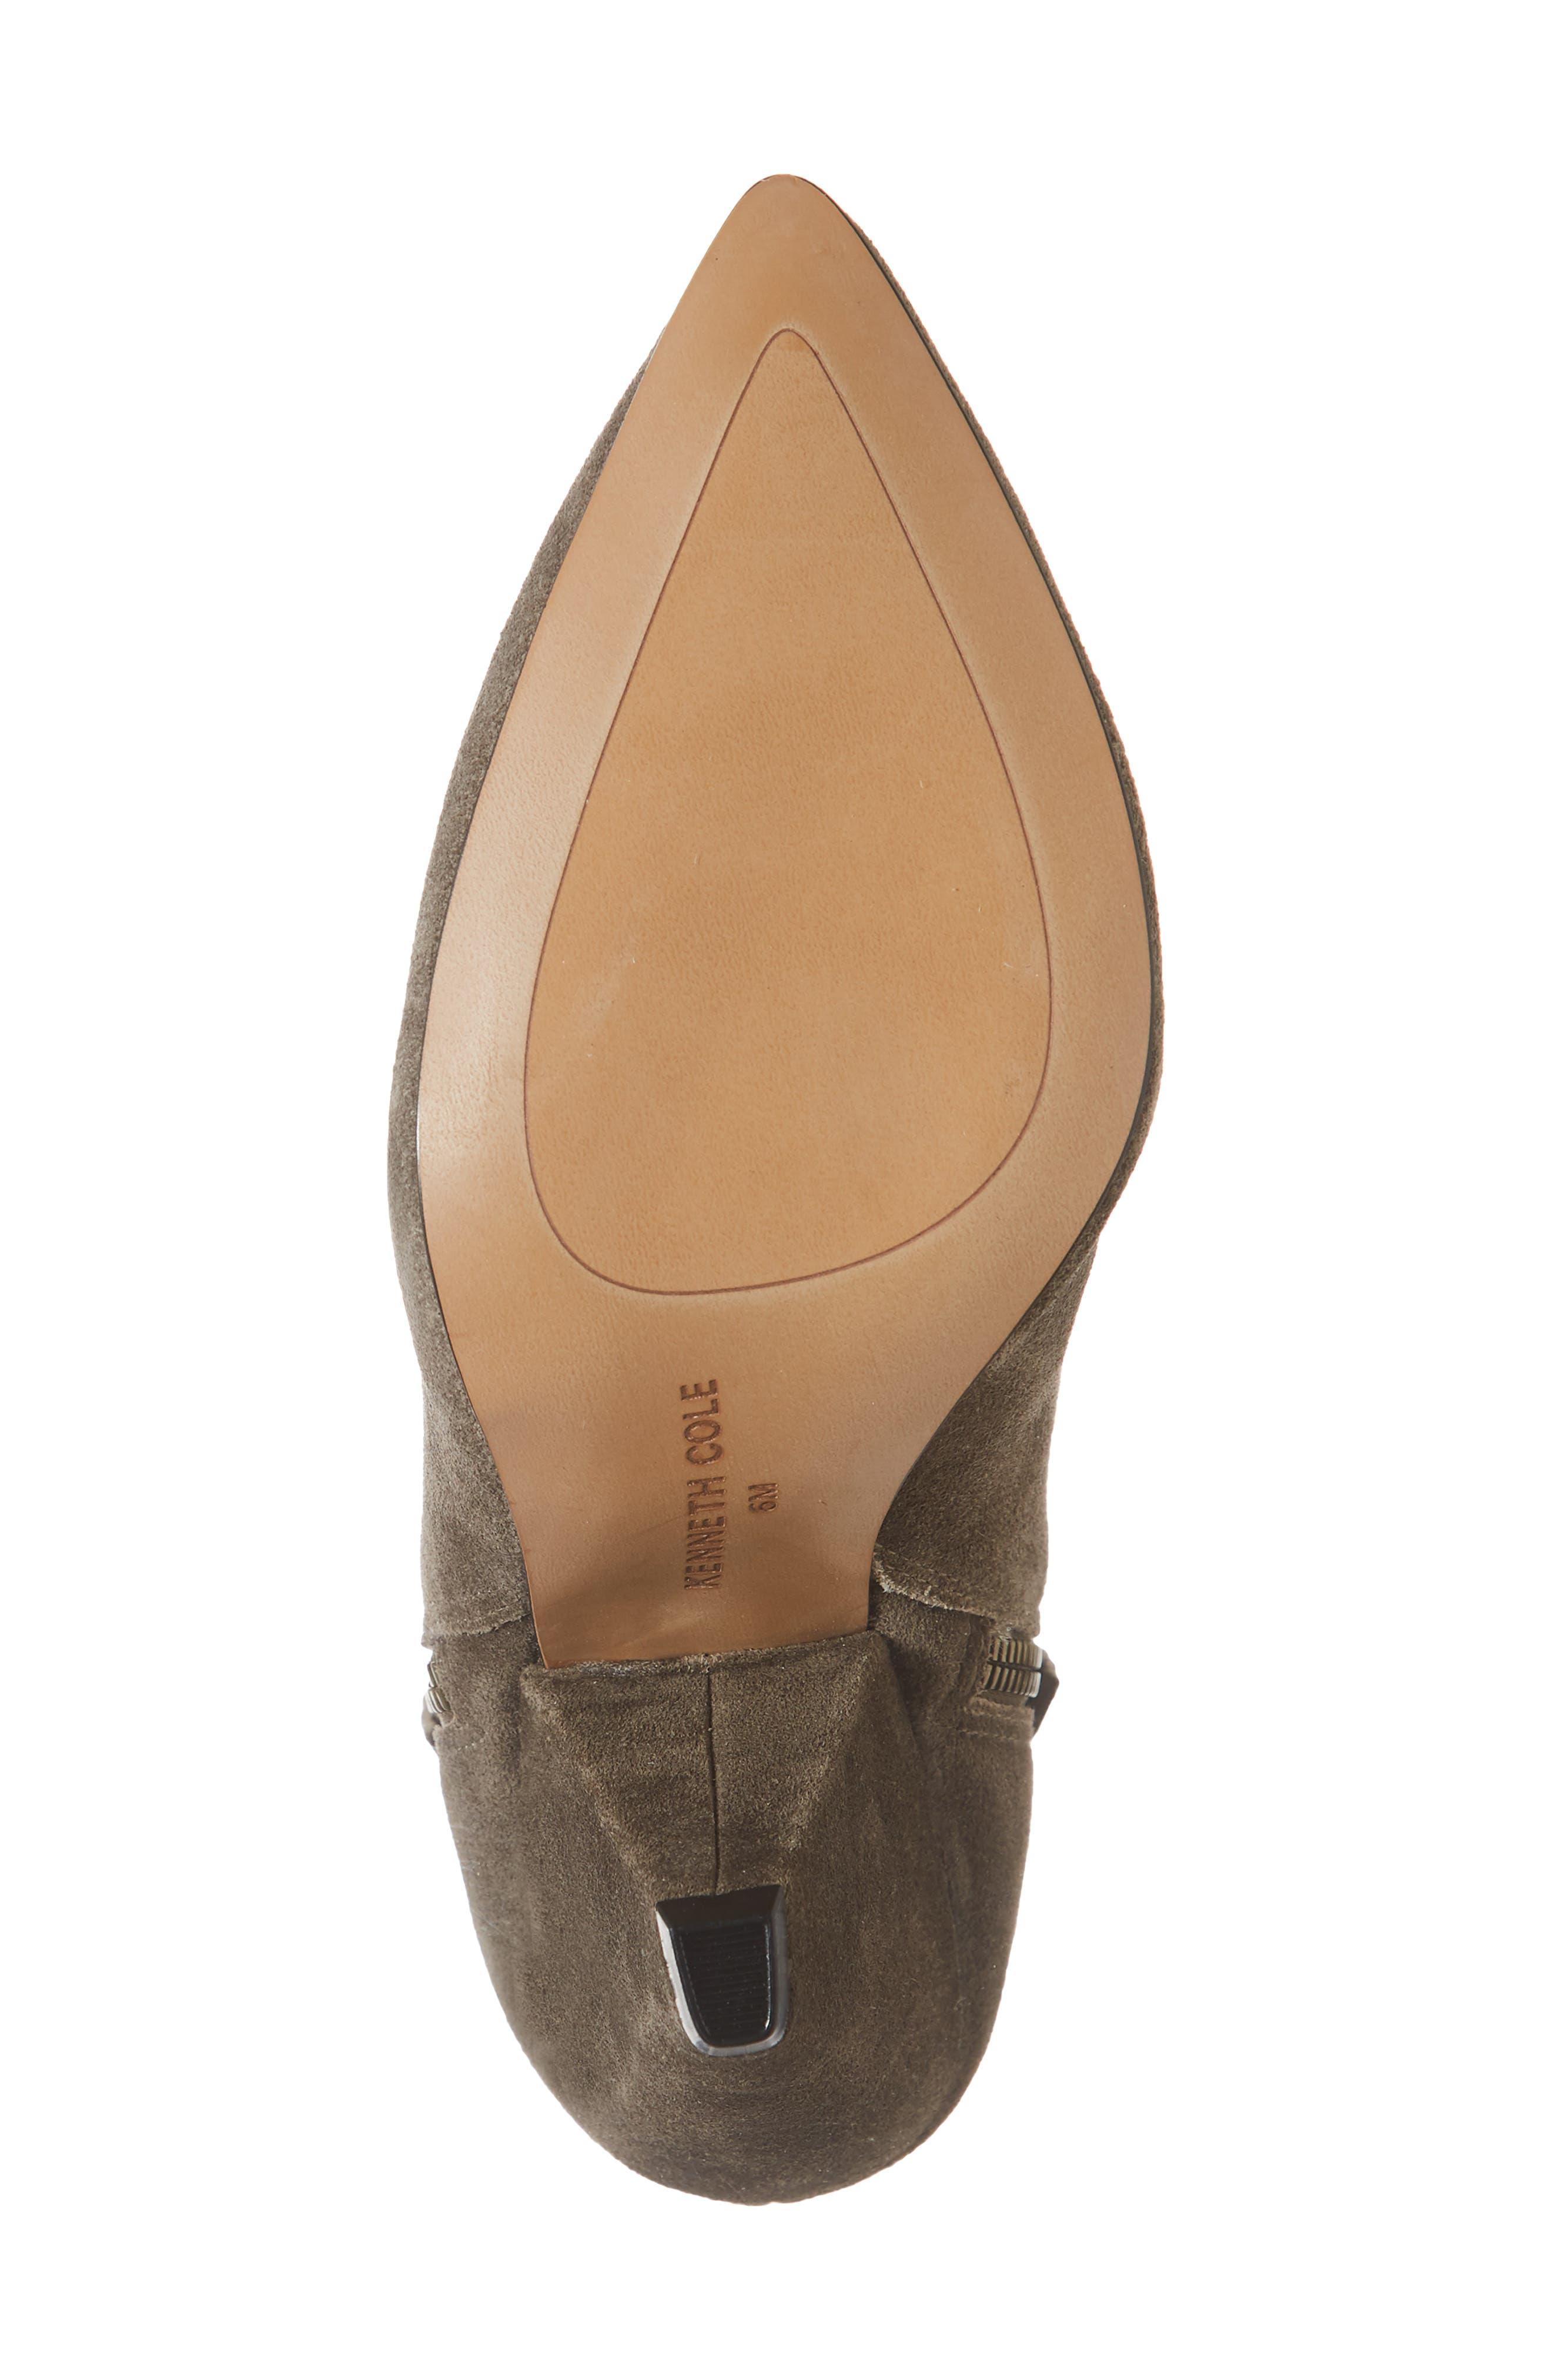 KENNETH COLE NEW YORK,                             Galway Bootie,                             Alternate thumbnail 6, color,                             063